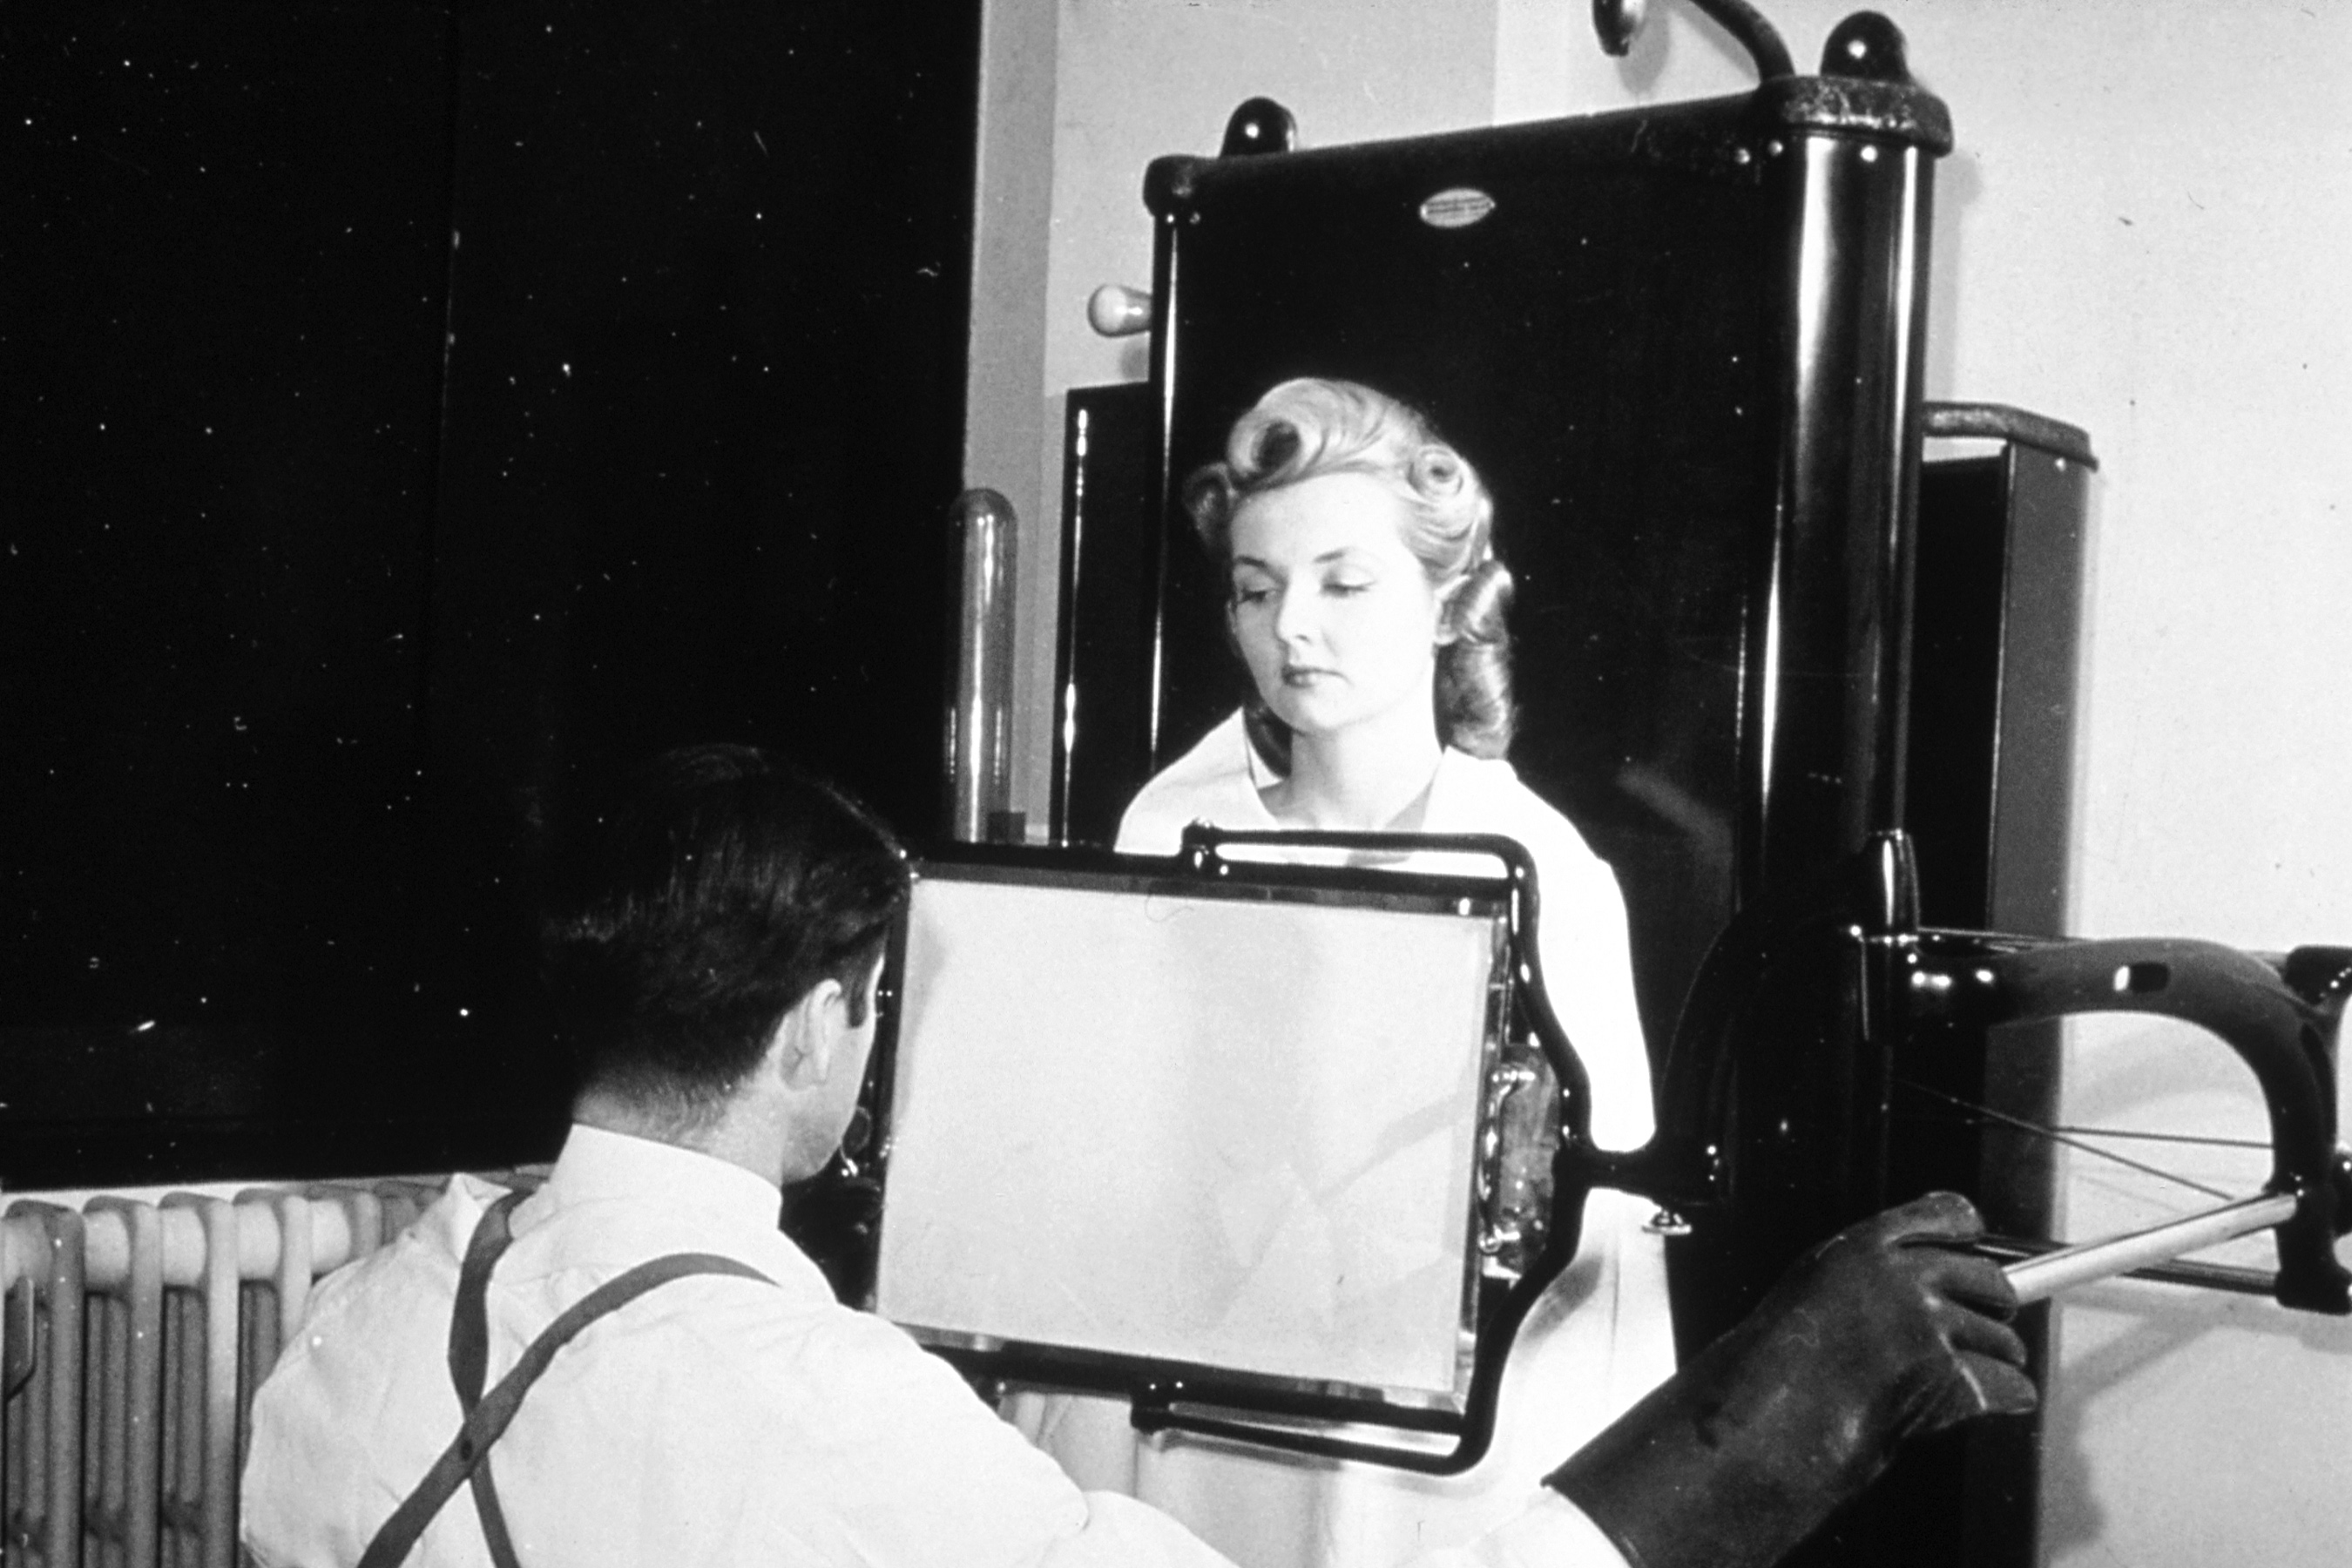 A male technician taking an X-ray of a female patient in 1940